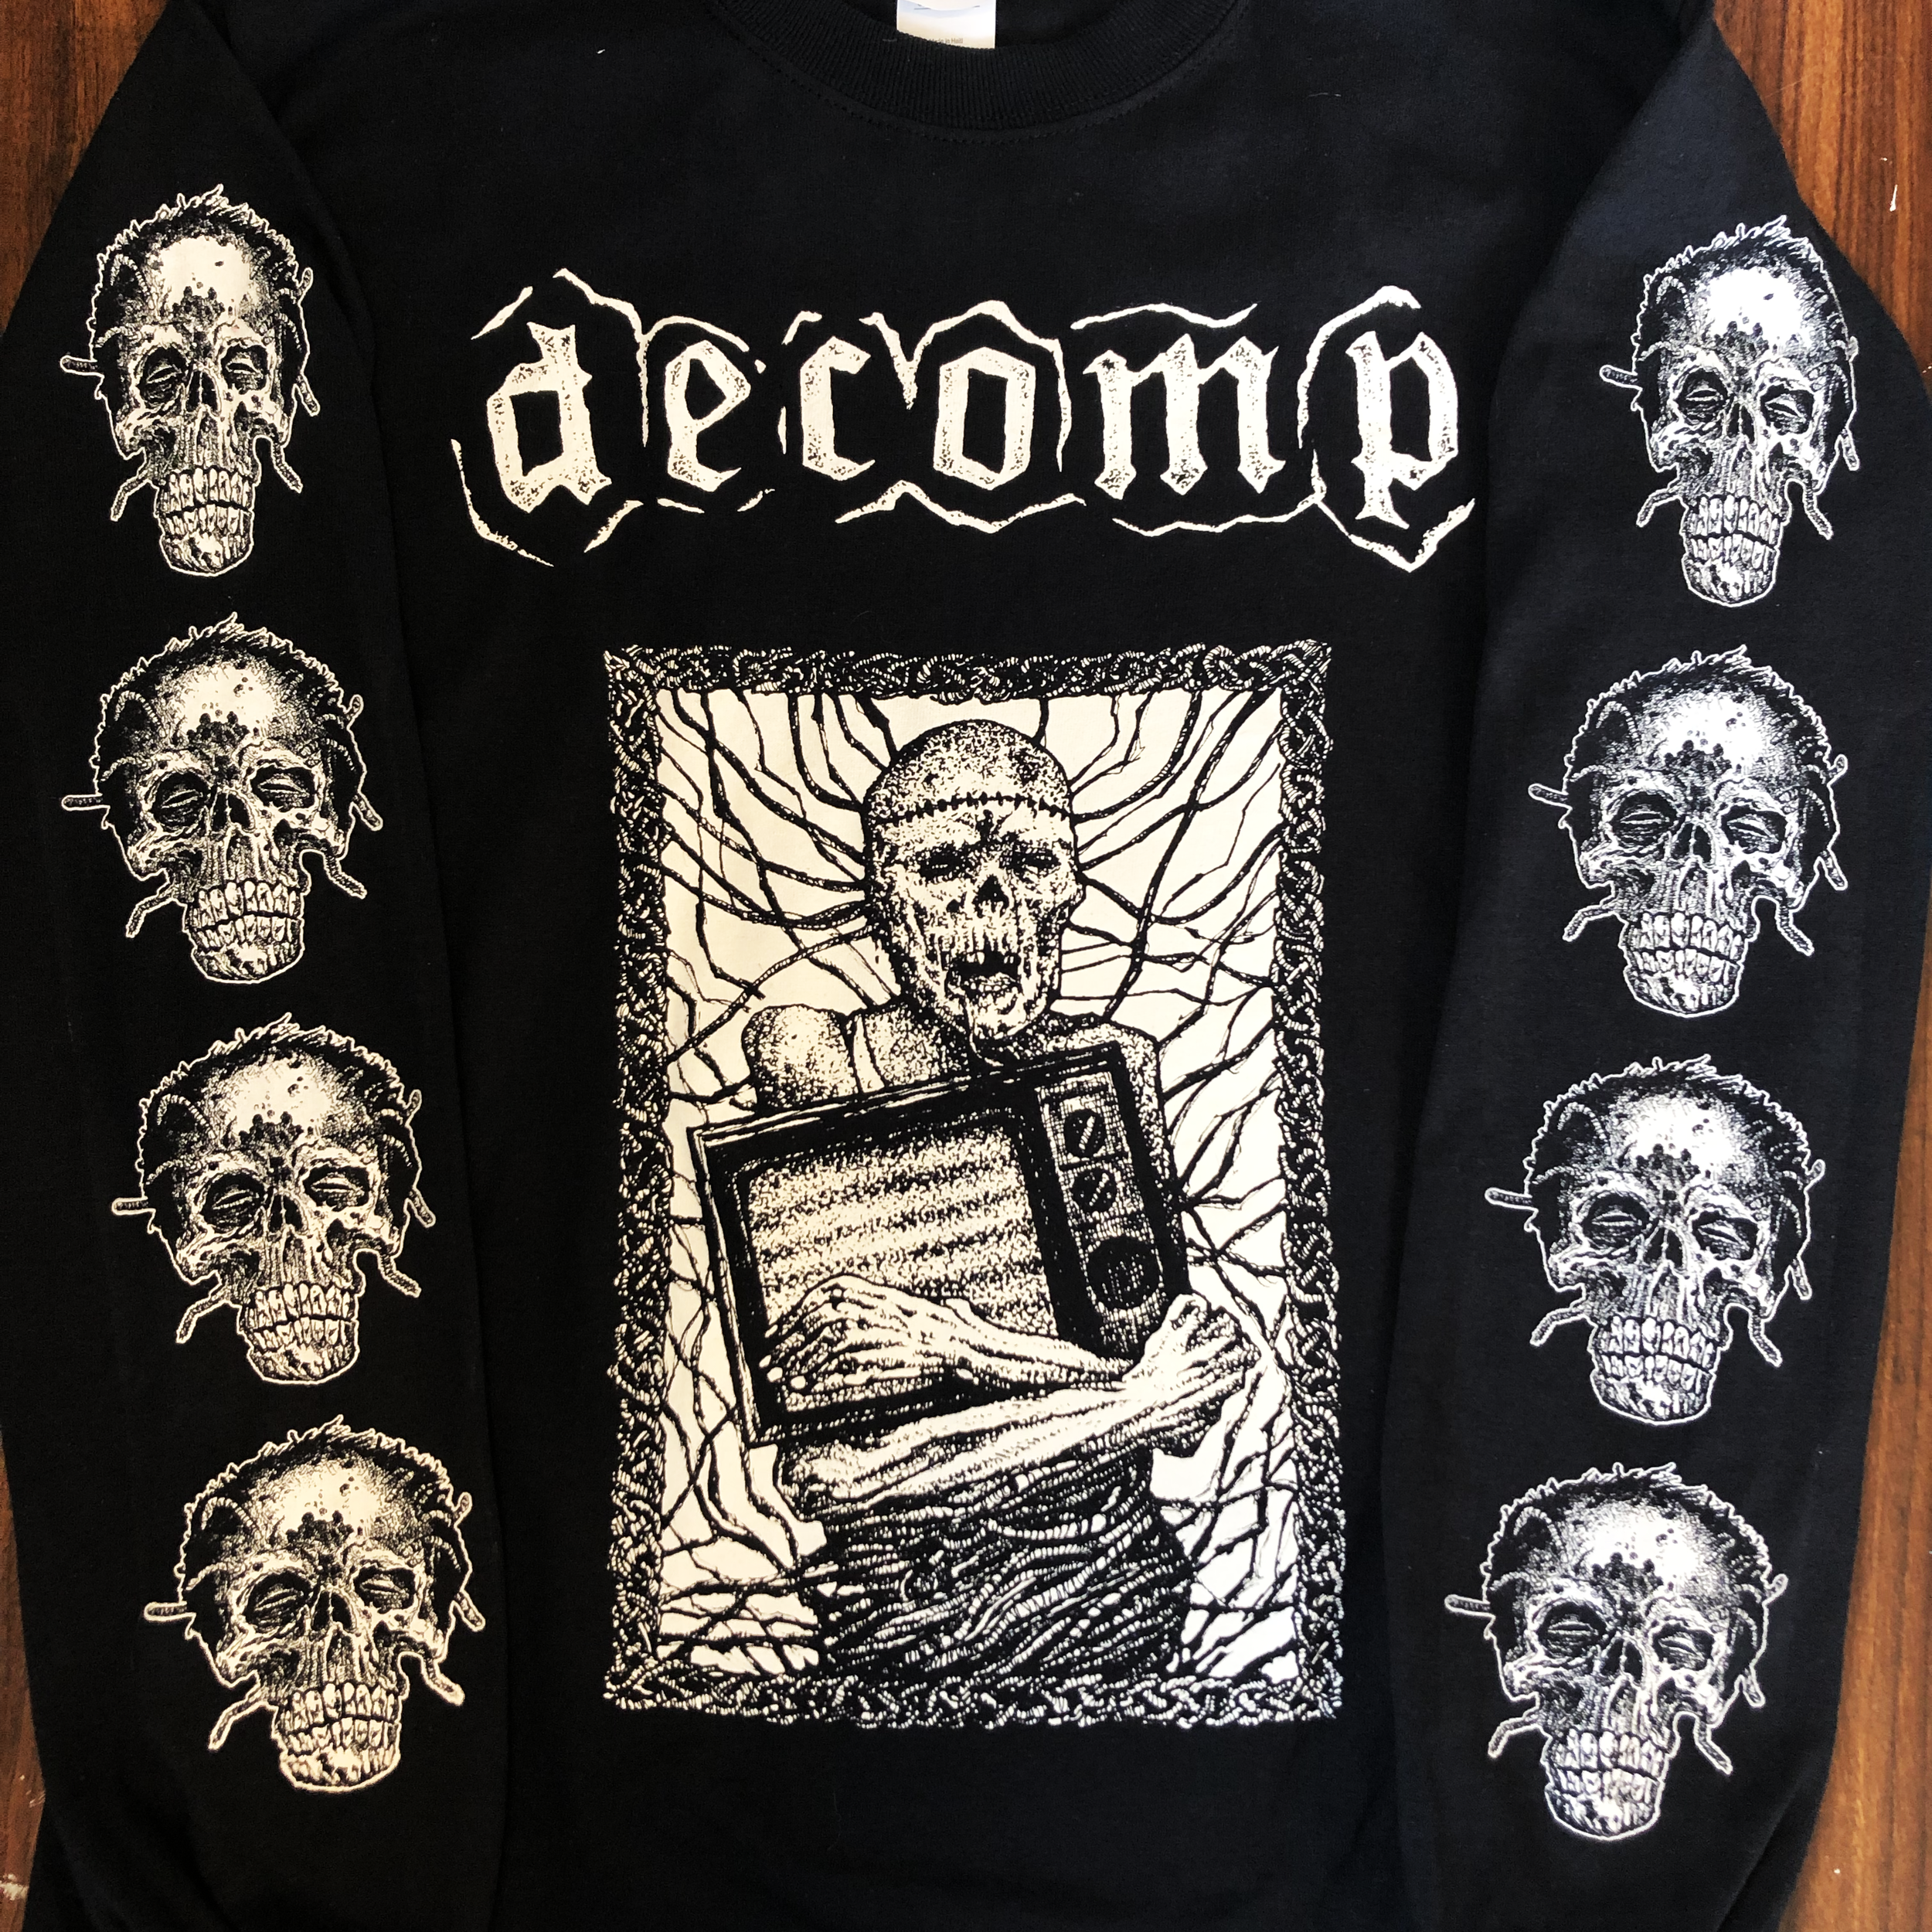 longsleeve discharge print for Decomp from Portland, OR. 2019